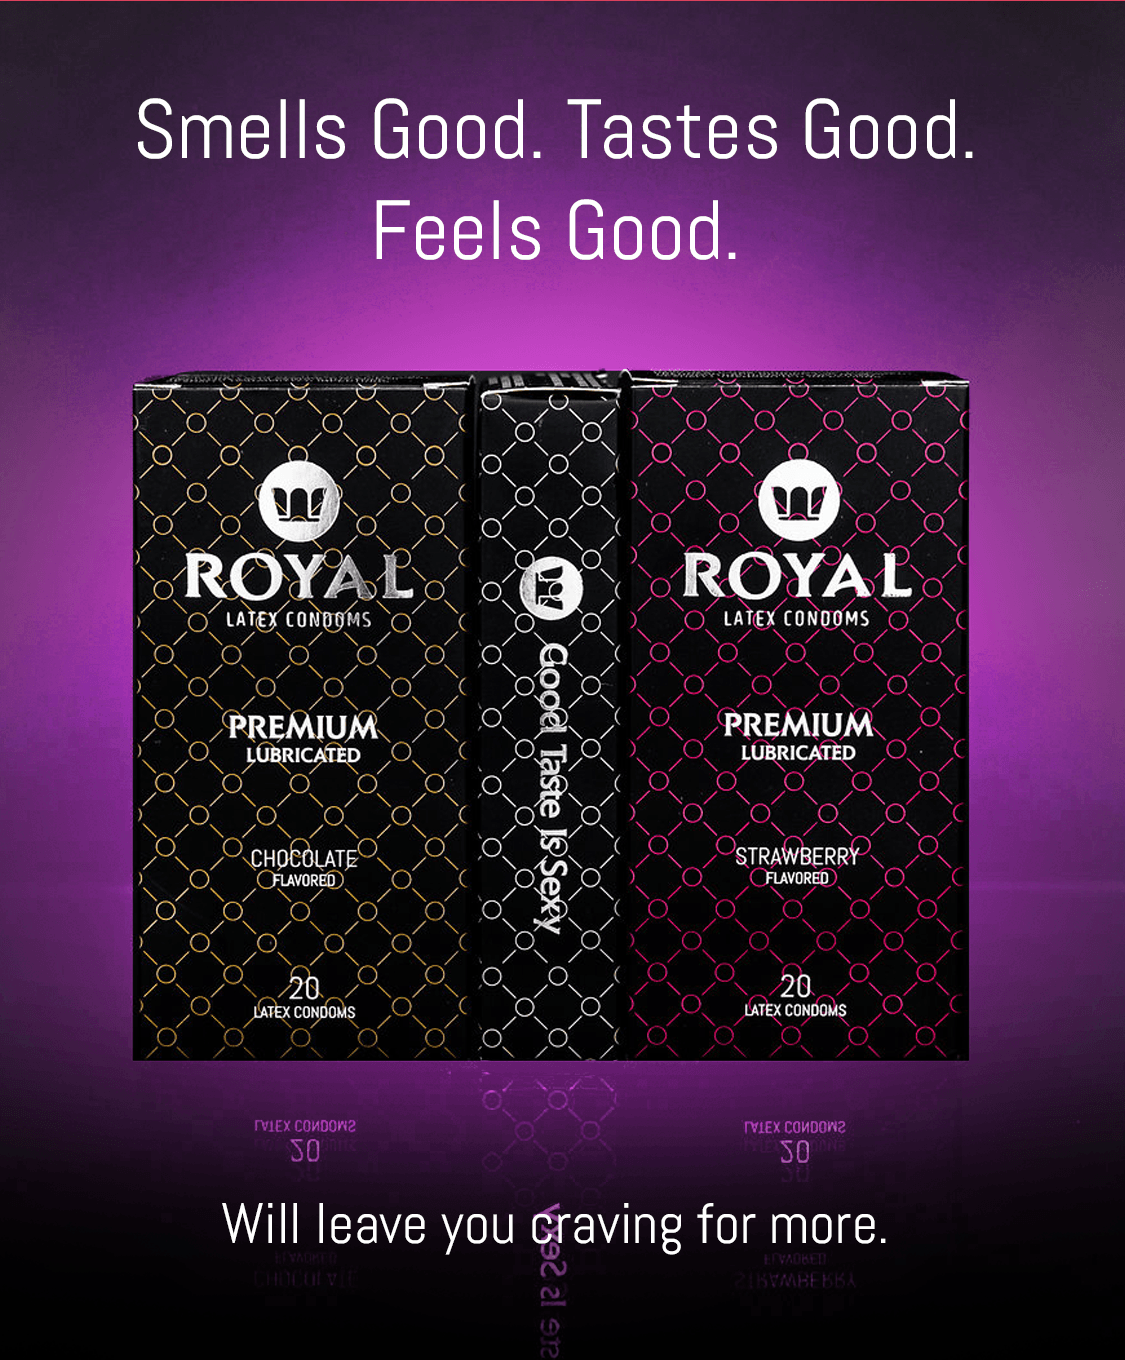 royal condoms